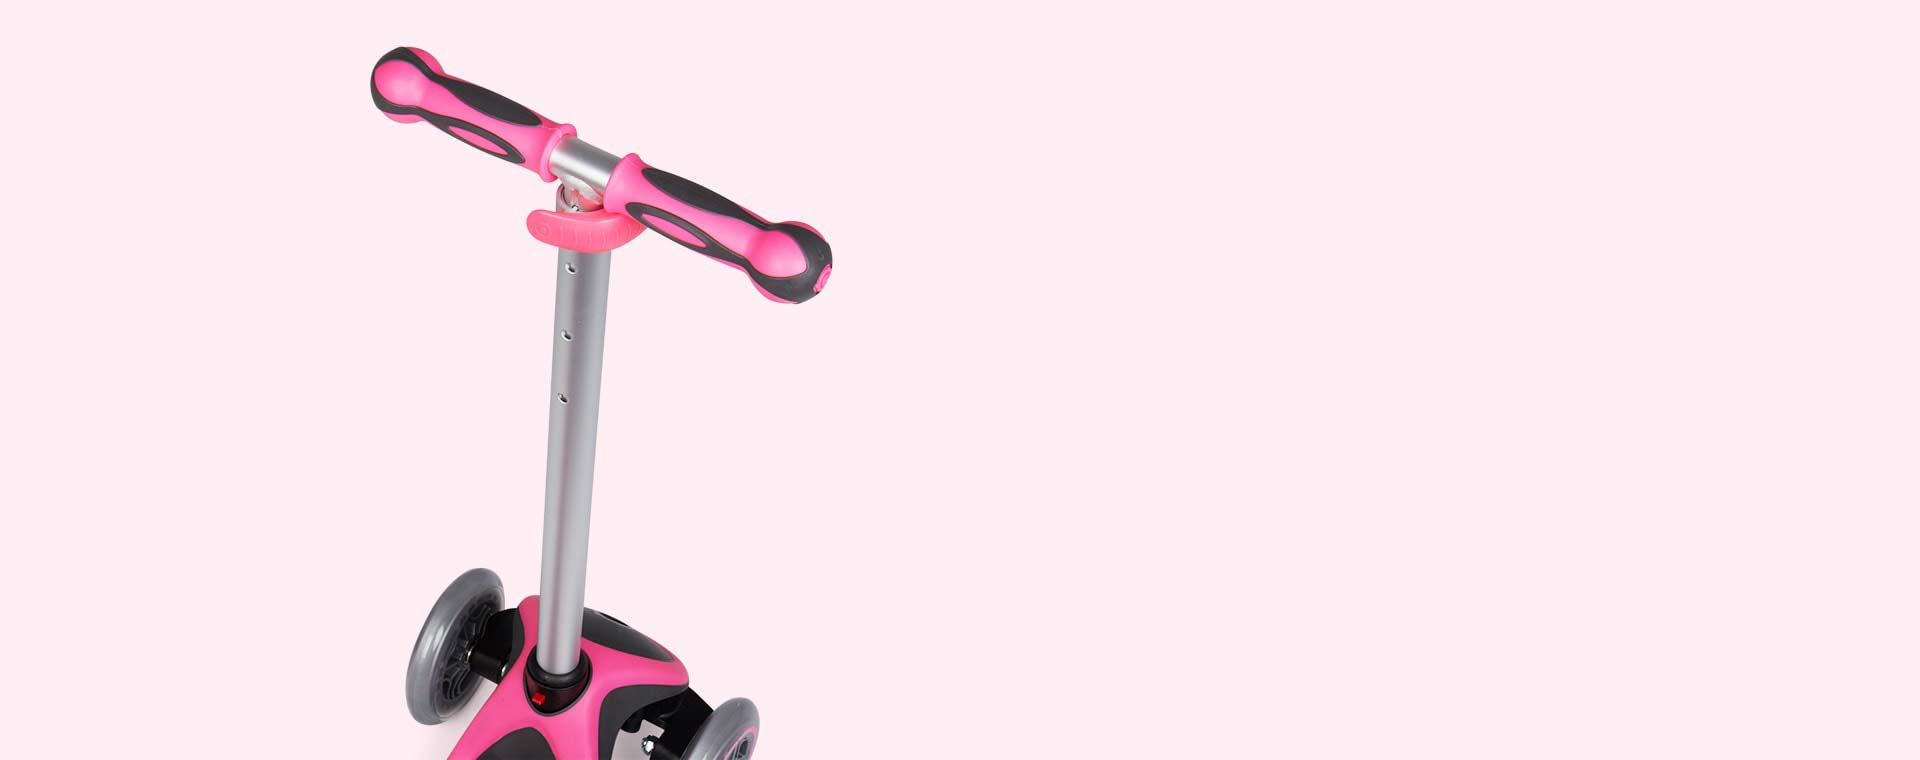 Deep Pink Globber Evo 4-in-1 Plus Scooter